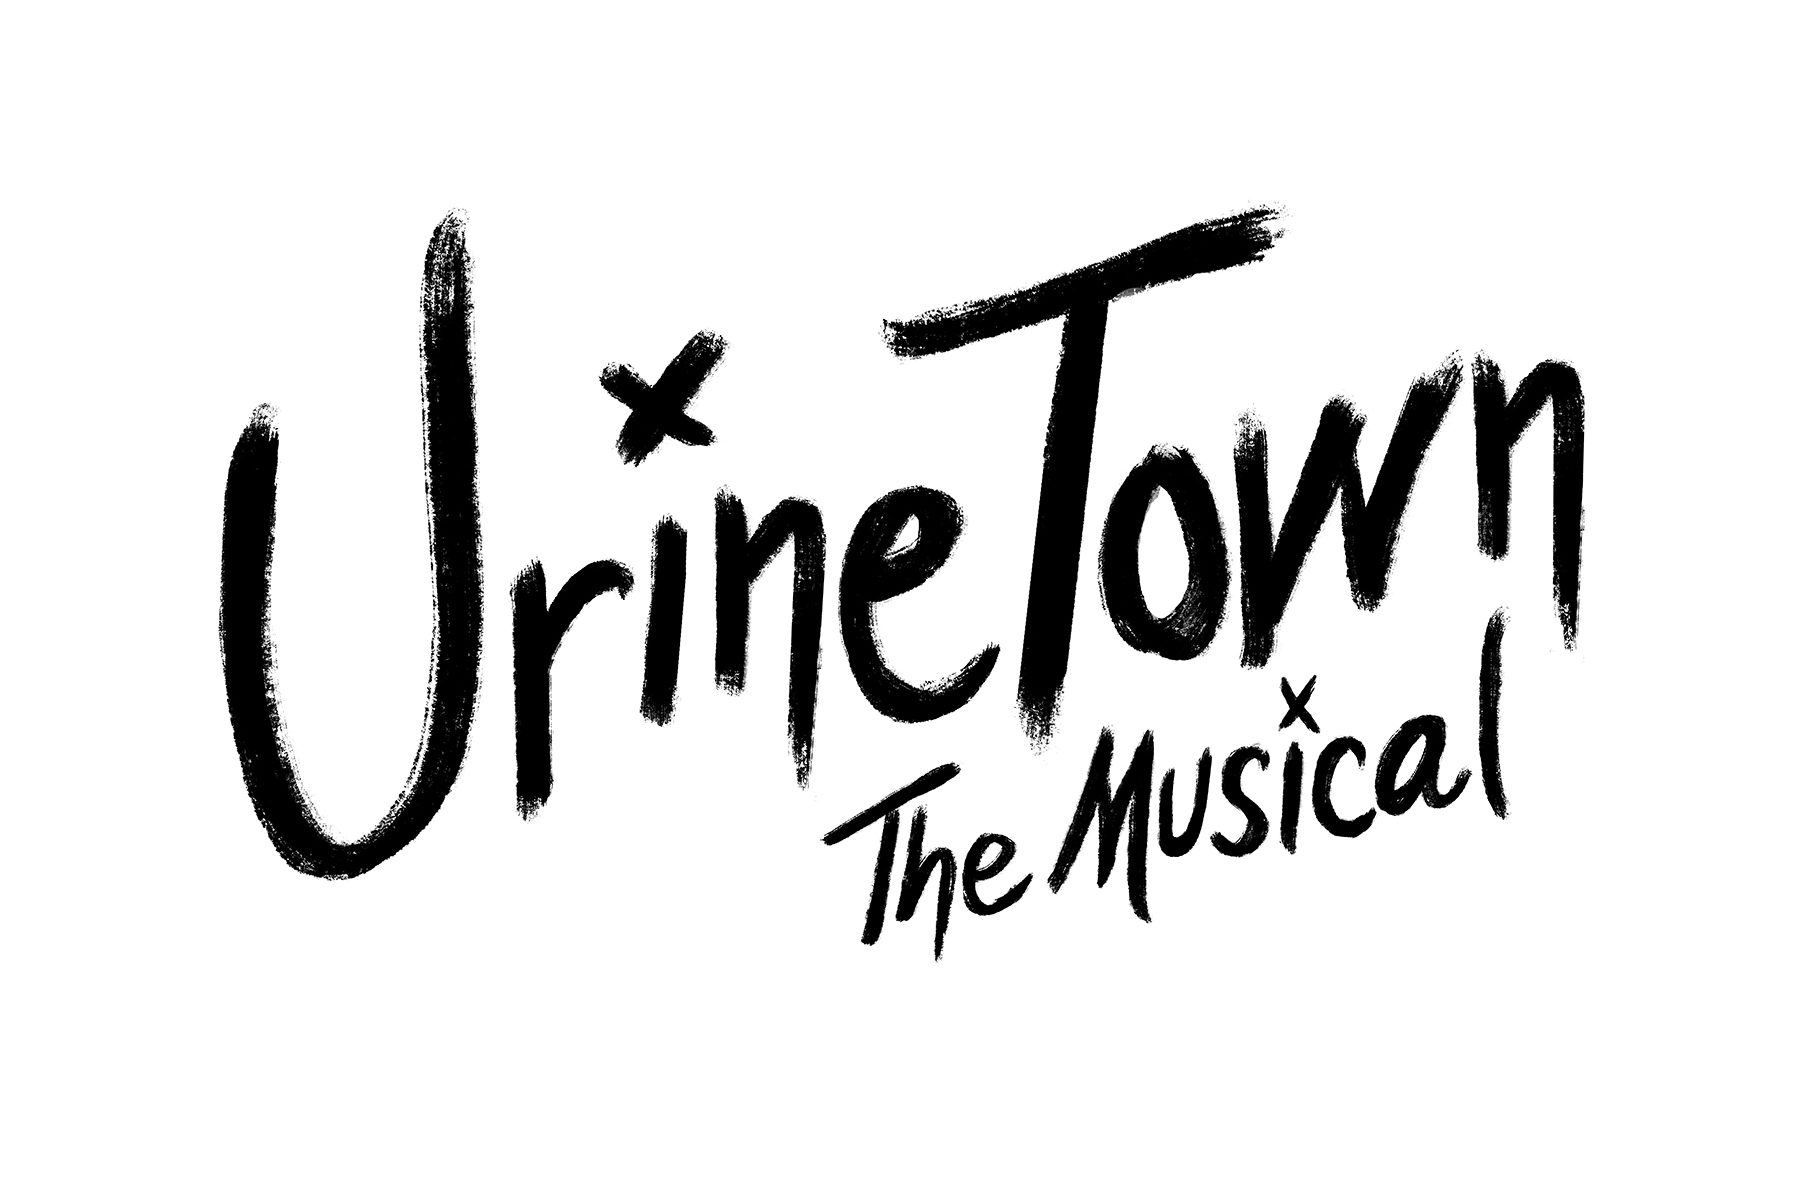 Urinetown Title Treatment